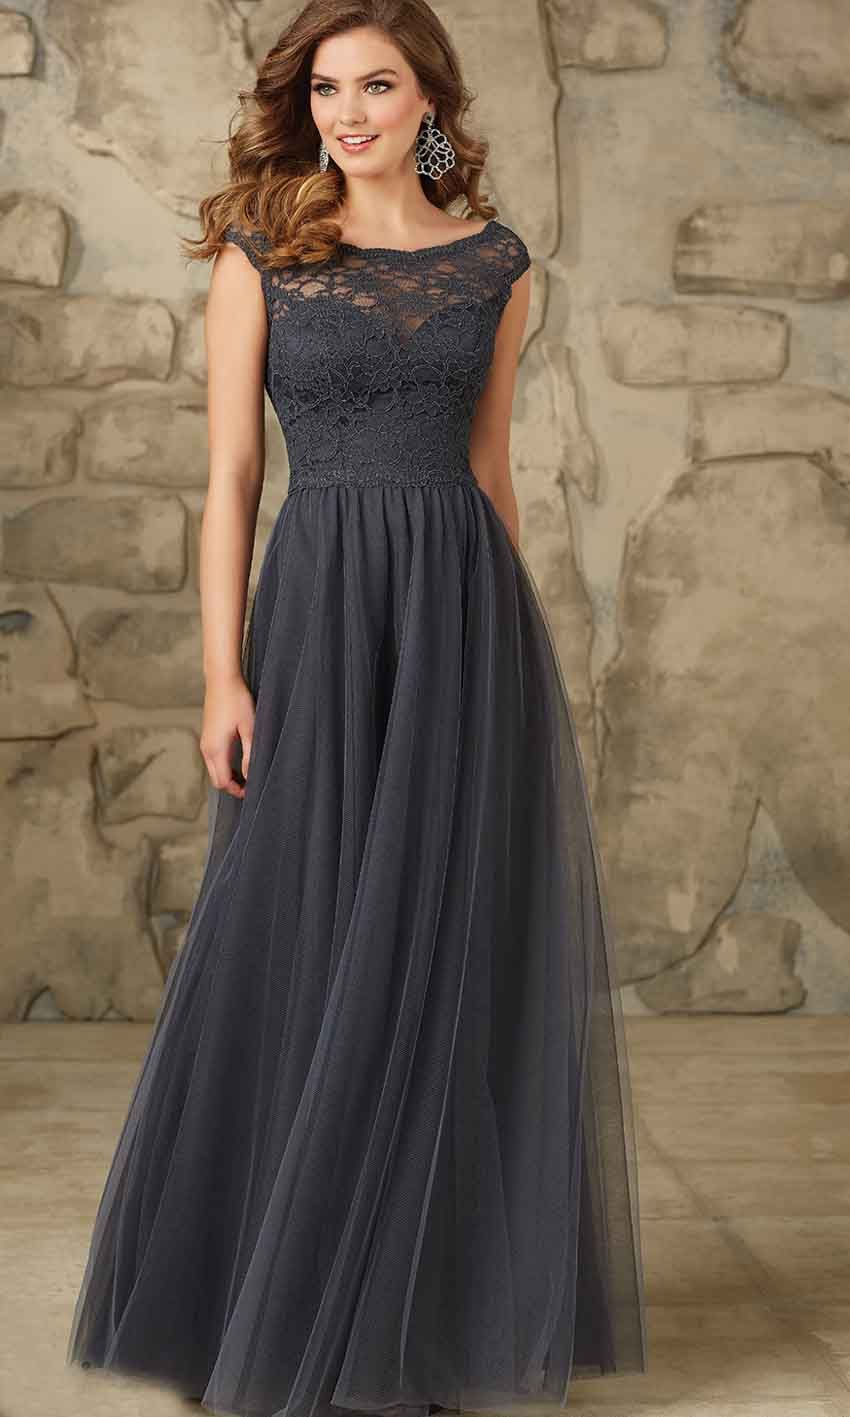 Dark gray long lace bridesmaid dresses uk ksp401 uk prom dresses dark gray long lace bridesmaid dresses uk ksp401 ombrellifo Image collections